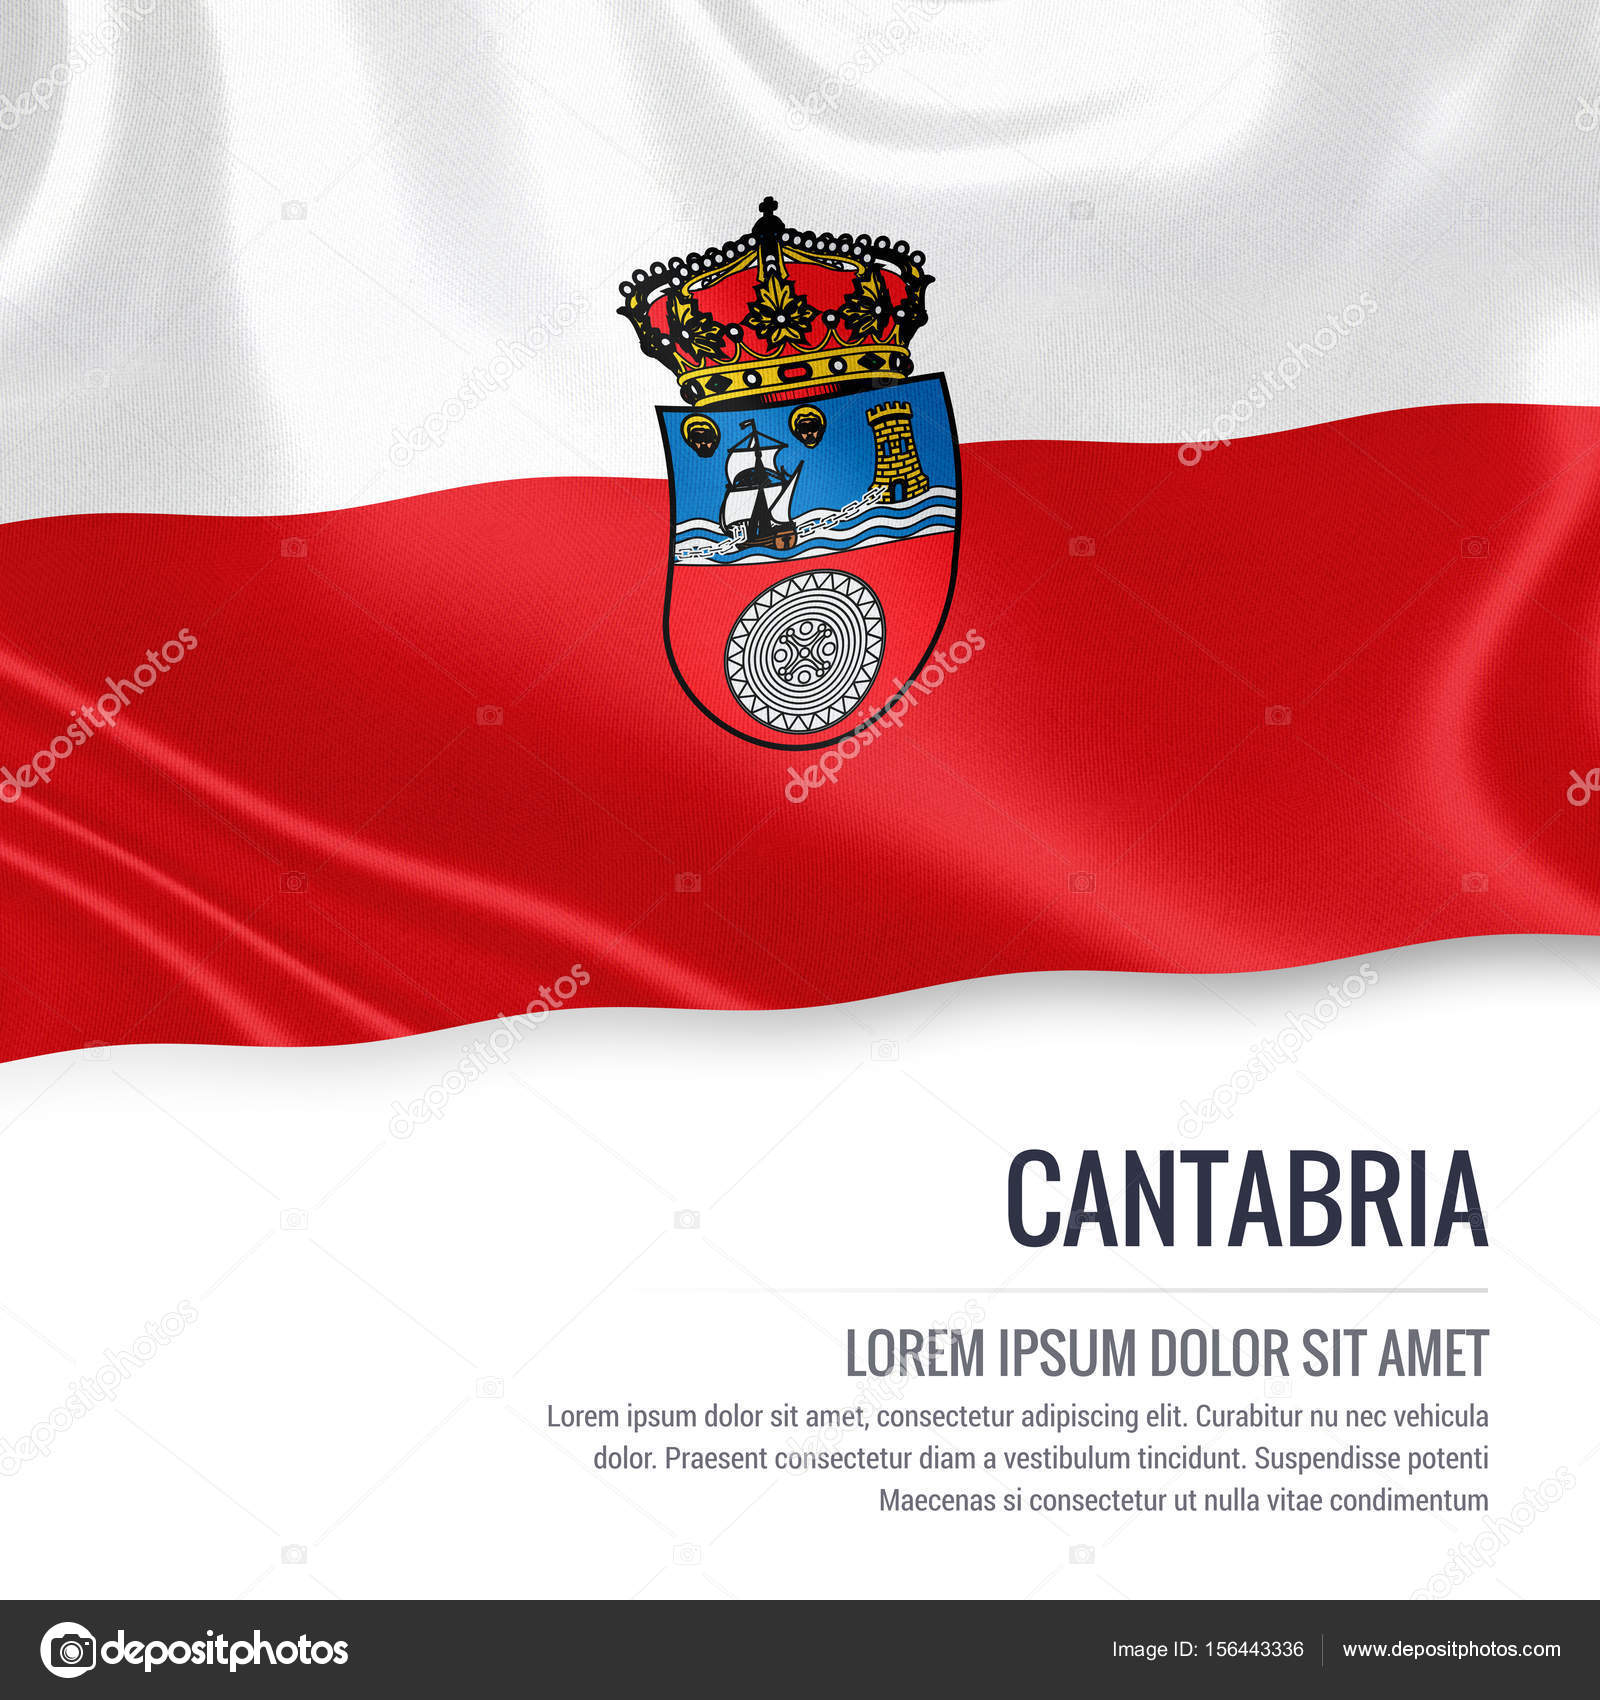 Spanish state Cantabria flag waving on an isolated white background